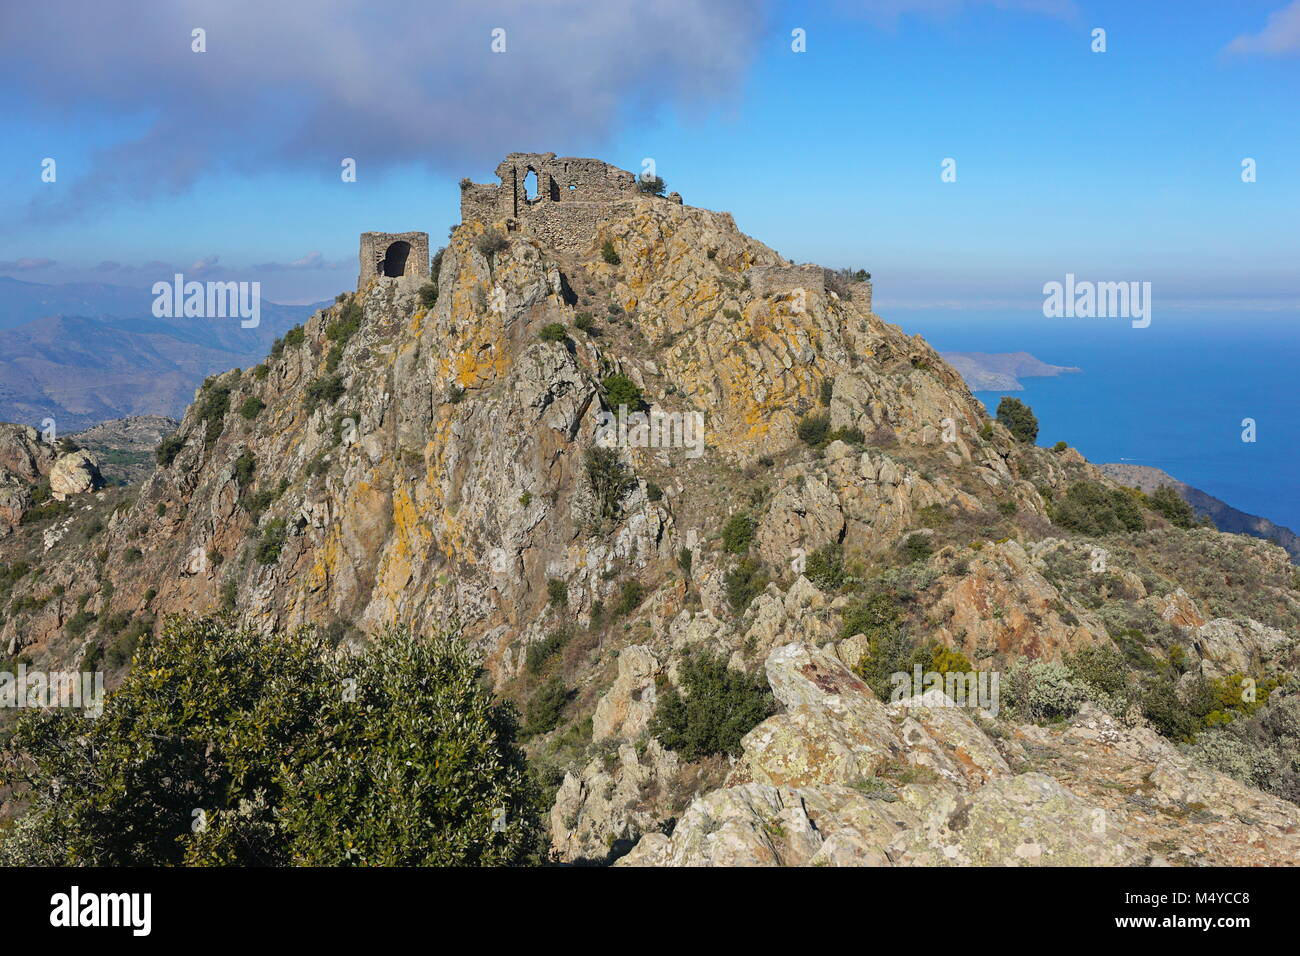 Spain the ruins of the castle de Verdera located at the top of a steep rocky spur,  Catalonia, Alt Emporda, Girona, - Stock Image